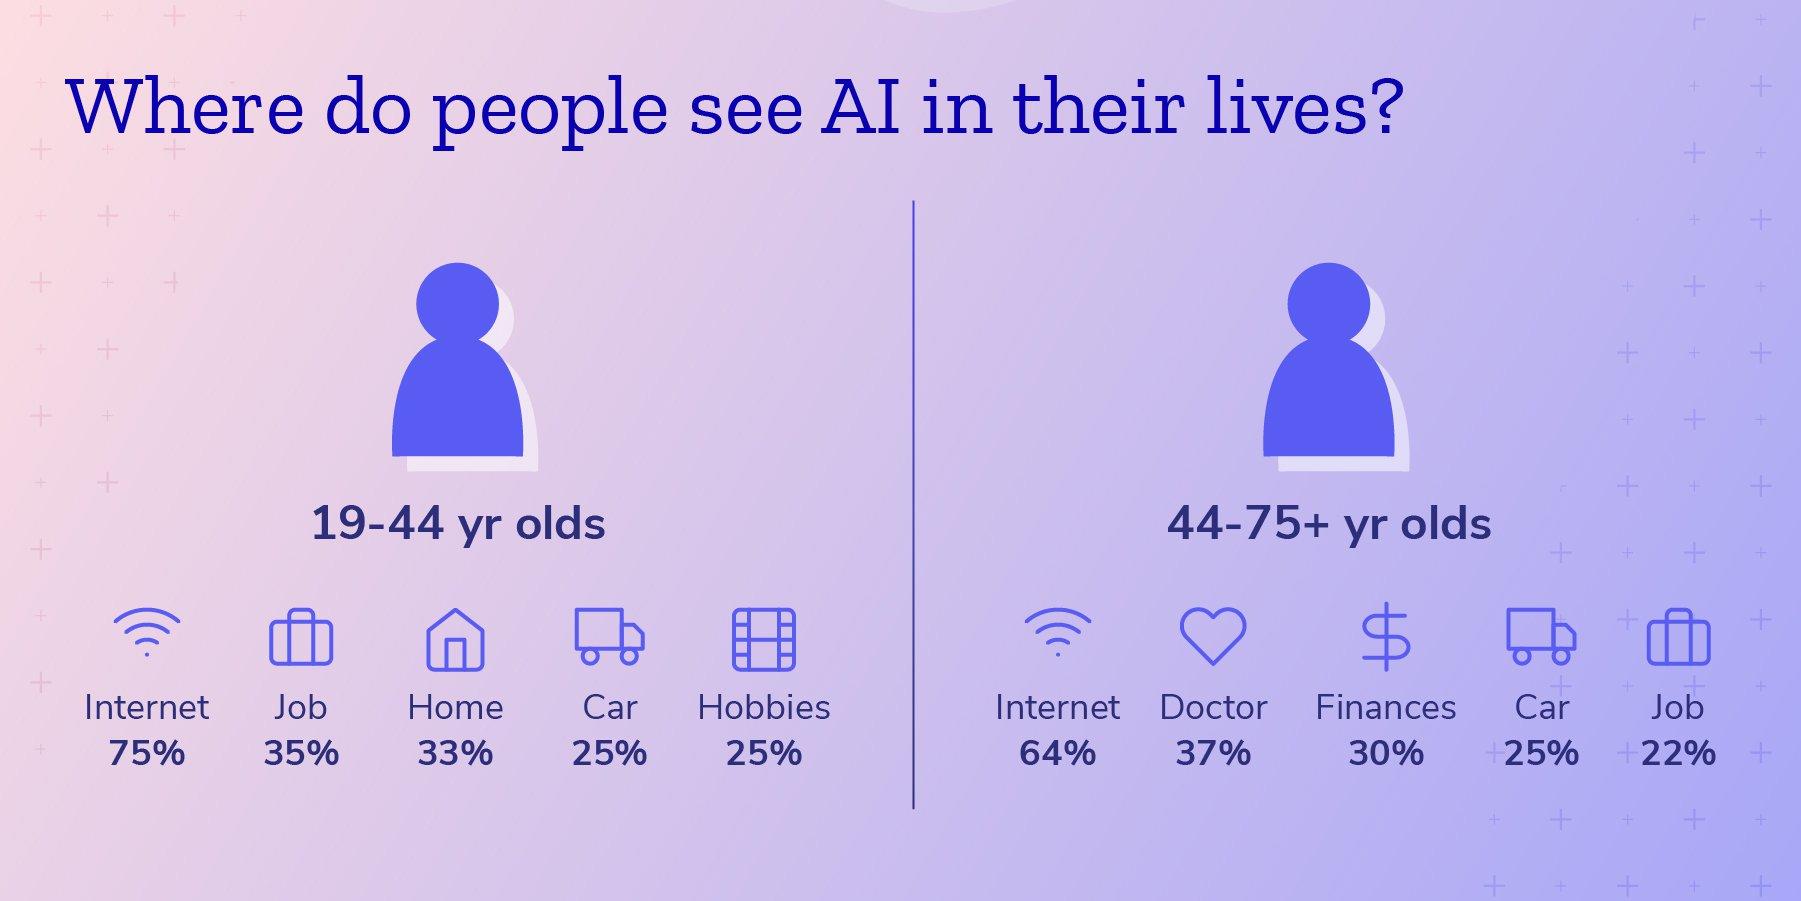 Where do people see AI in their daily lives?